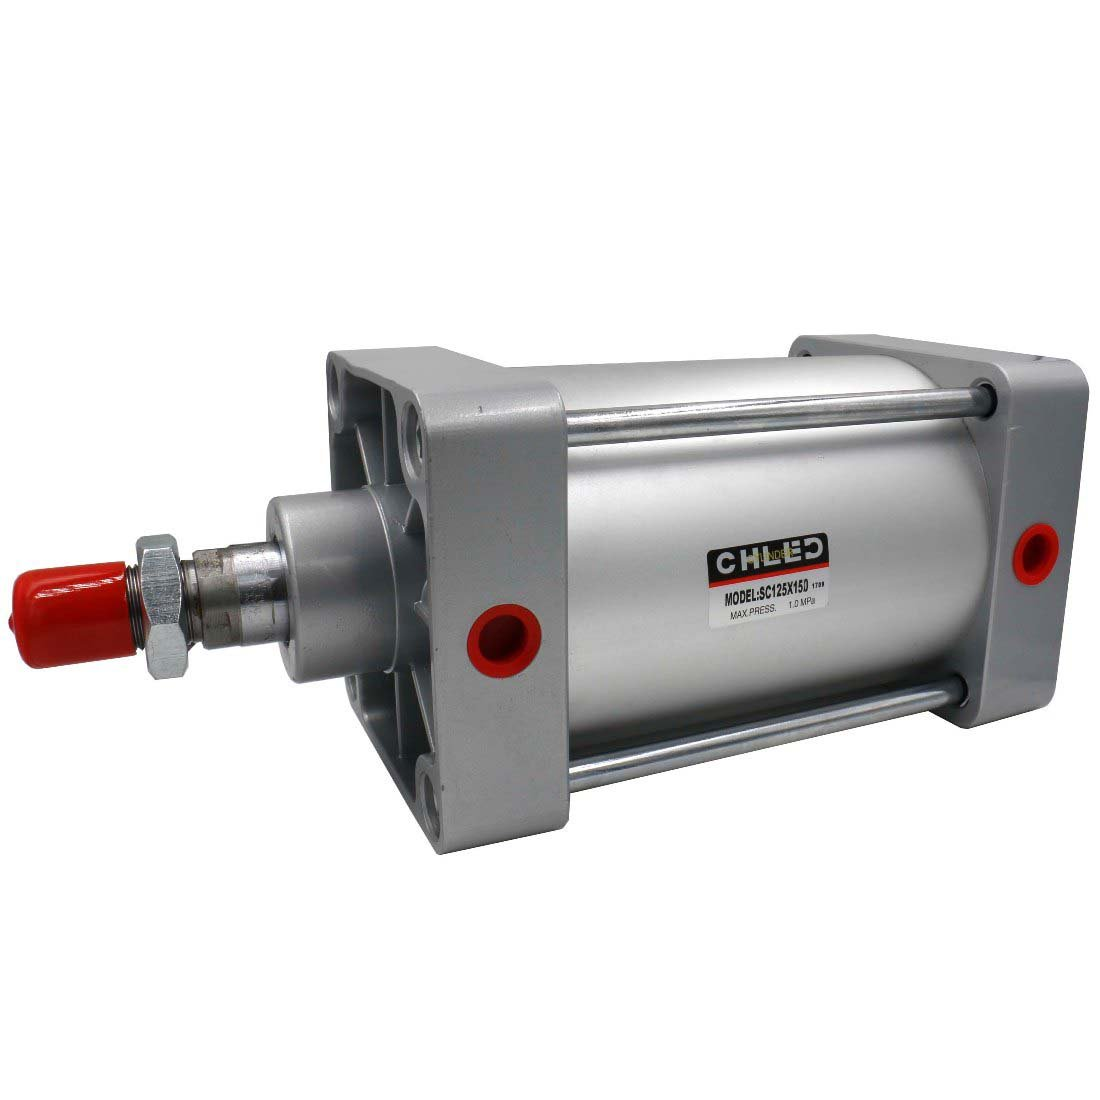 Baomain Pneumatic Air Cylinder SC 125 x 150 PT1/2; Bore:125mm, Stroke:150mm; Screwed Piston Rod Dual Action